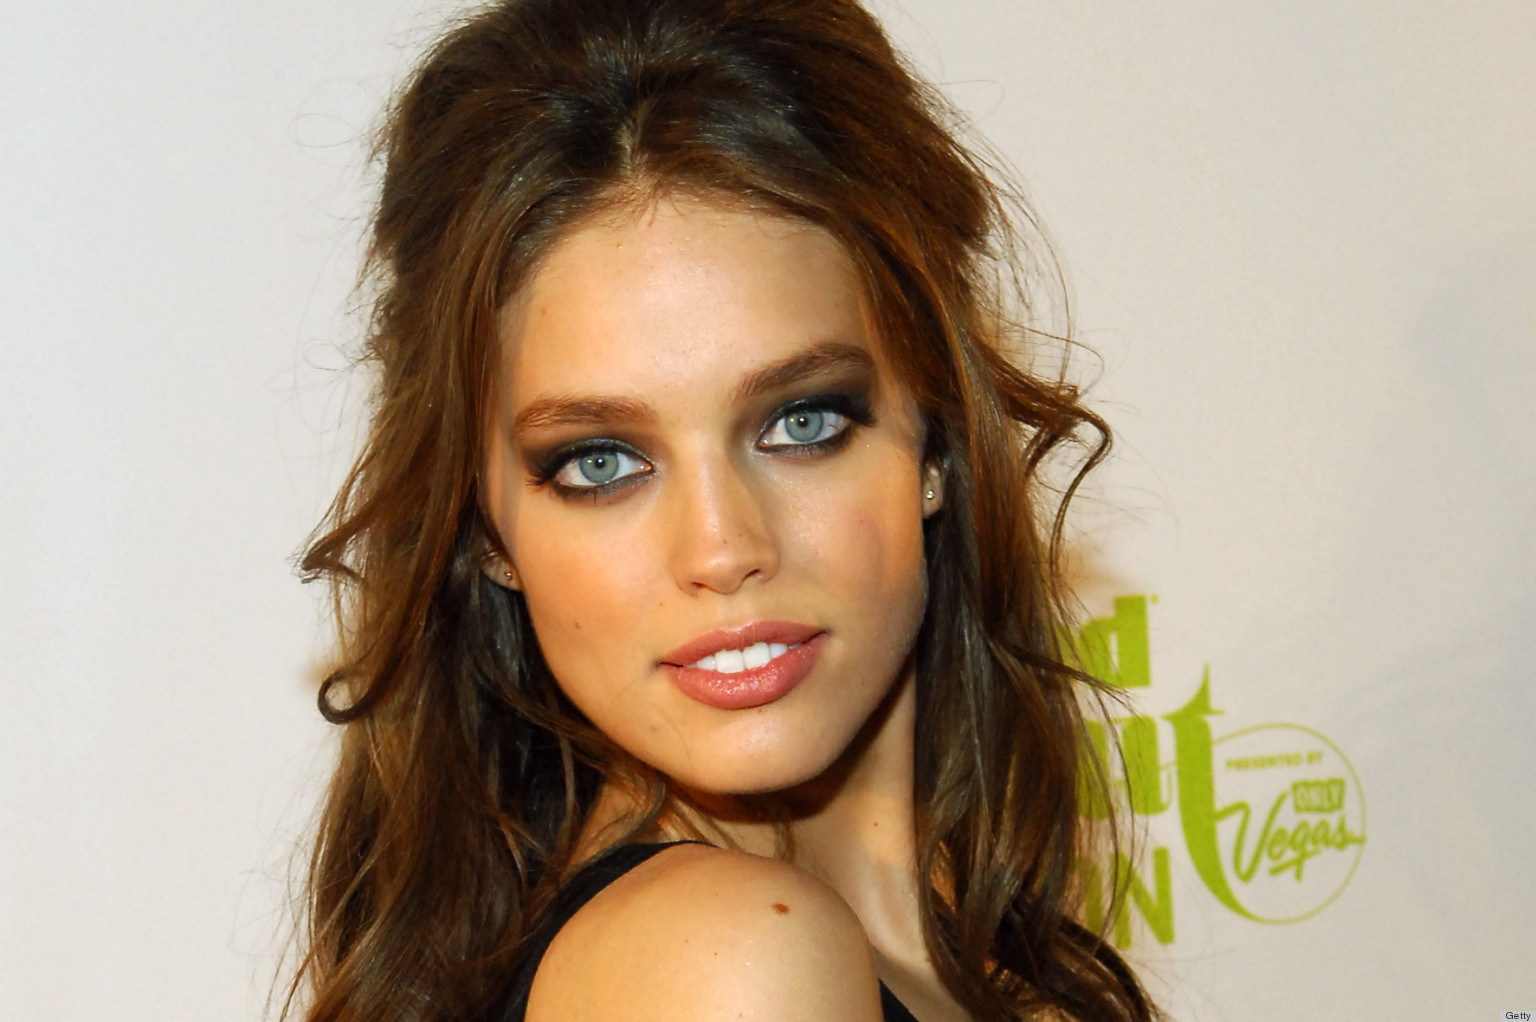 Model Emily DiDonato Dating Jake Gyllenhaal After Meeting At ...